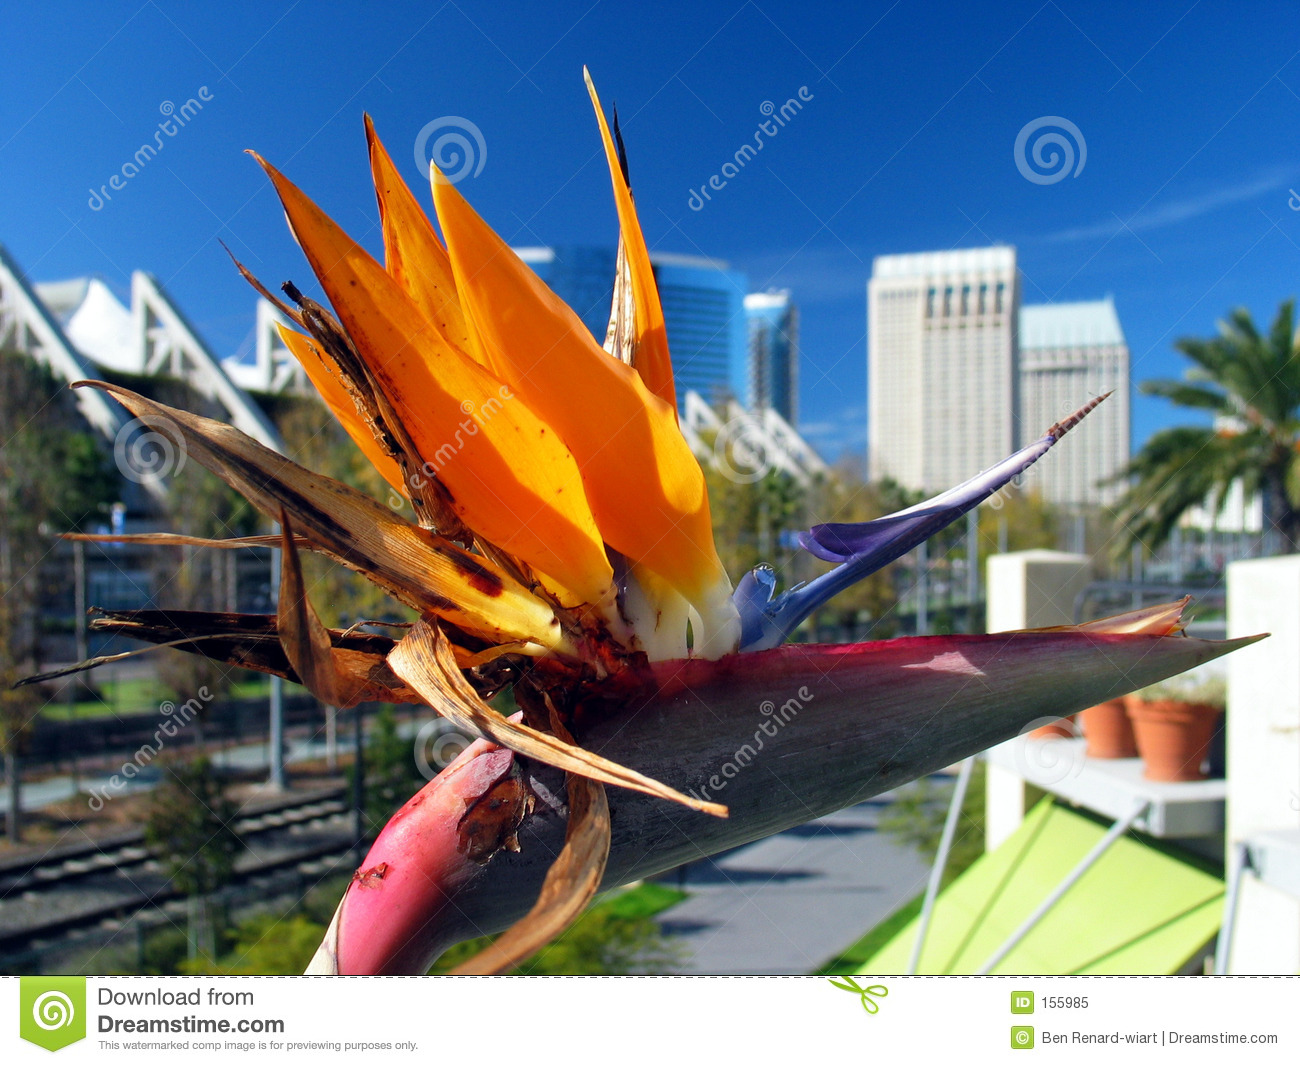 Flower close-up, with the city of San Diego in the background.